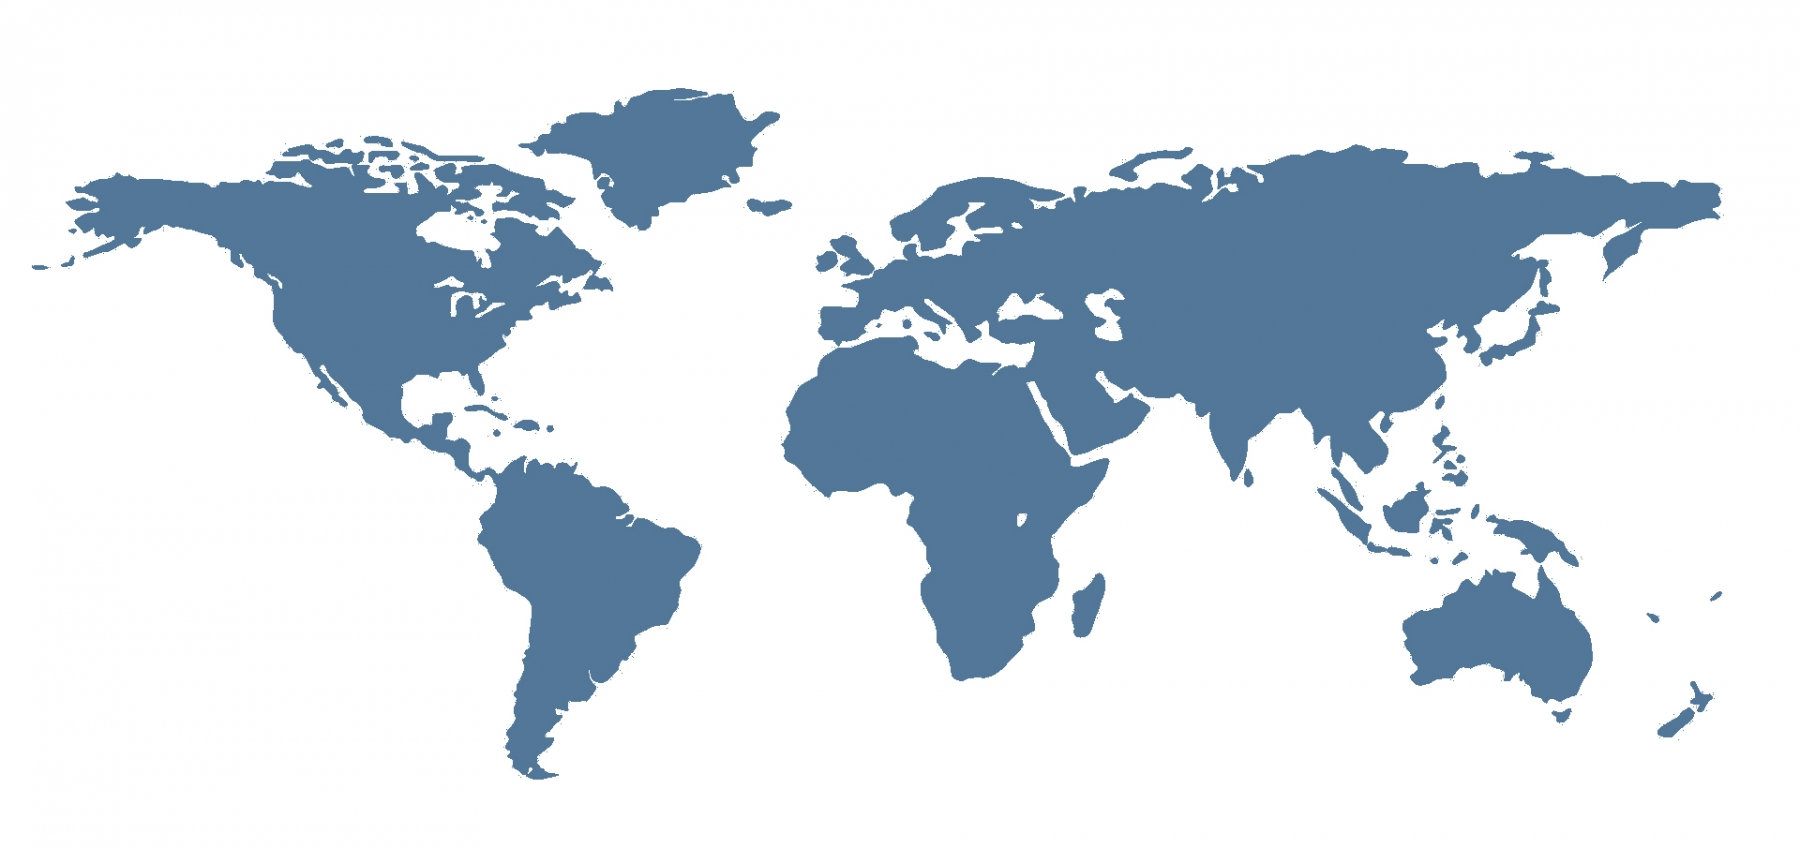 Current IBF members - European Commission, Argentina, Australia, Canada, China, India, New Zealand, South Africa and USA